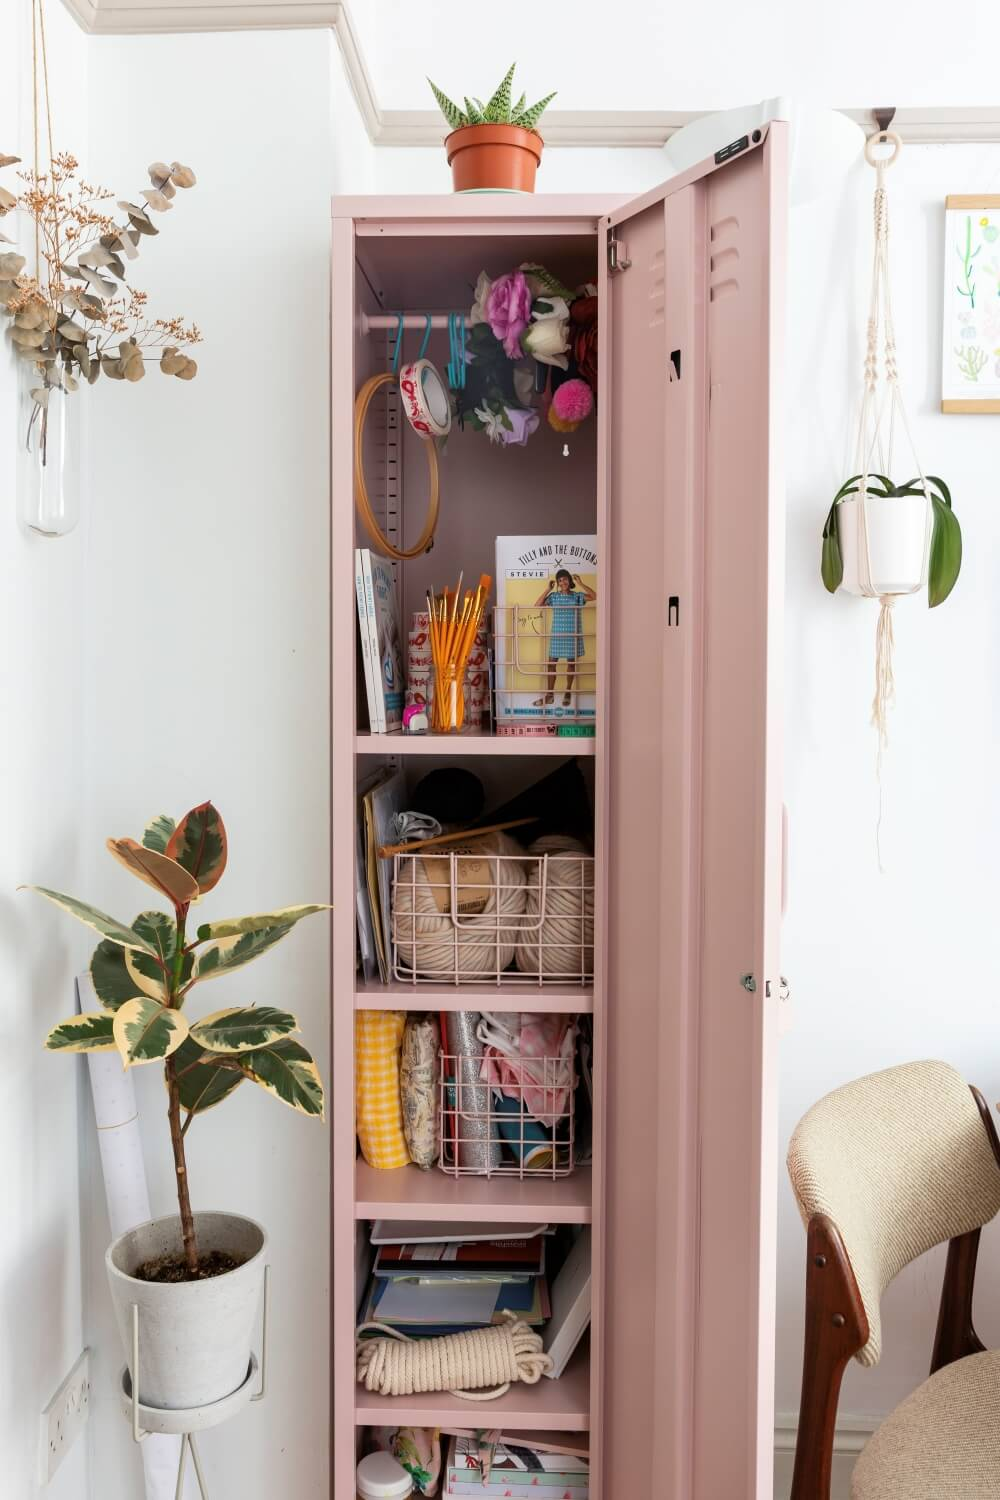 A look inside the pink mustard locker . Shelves of craft storage